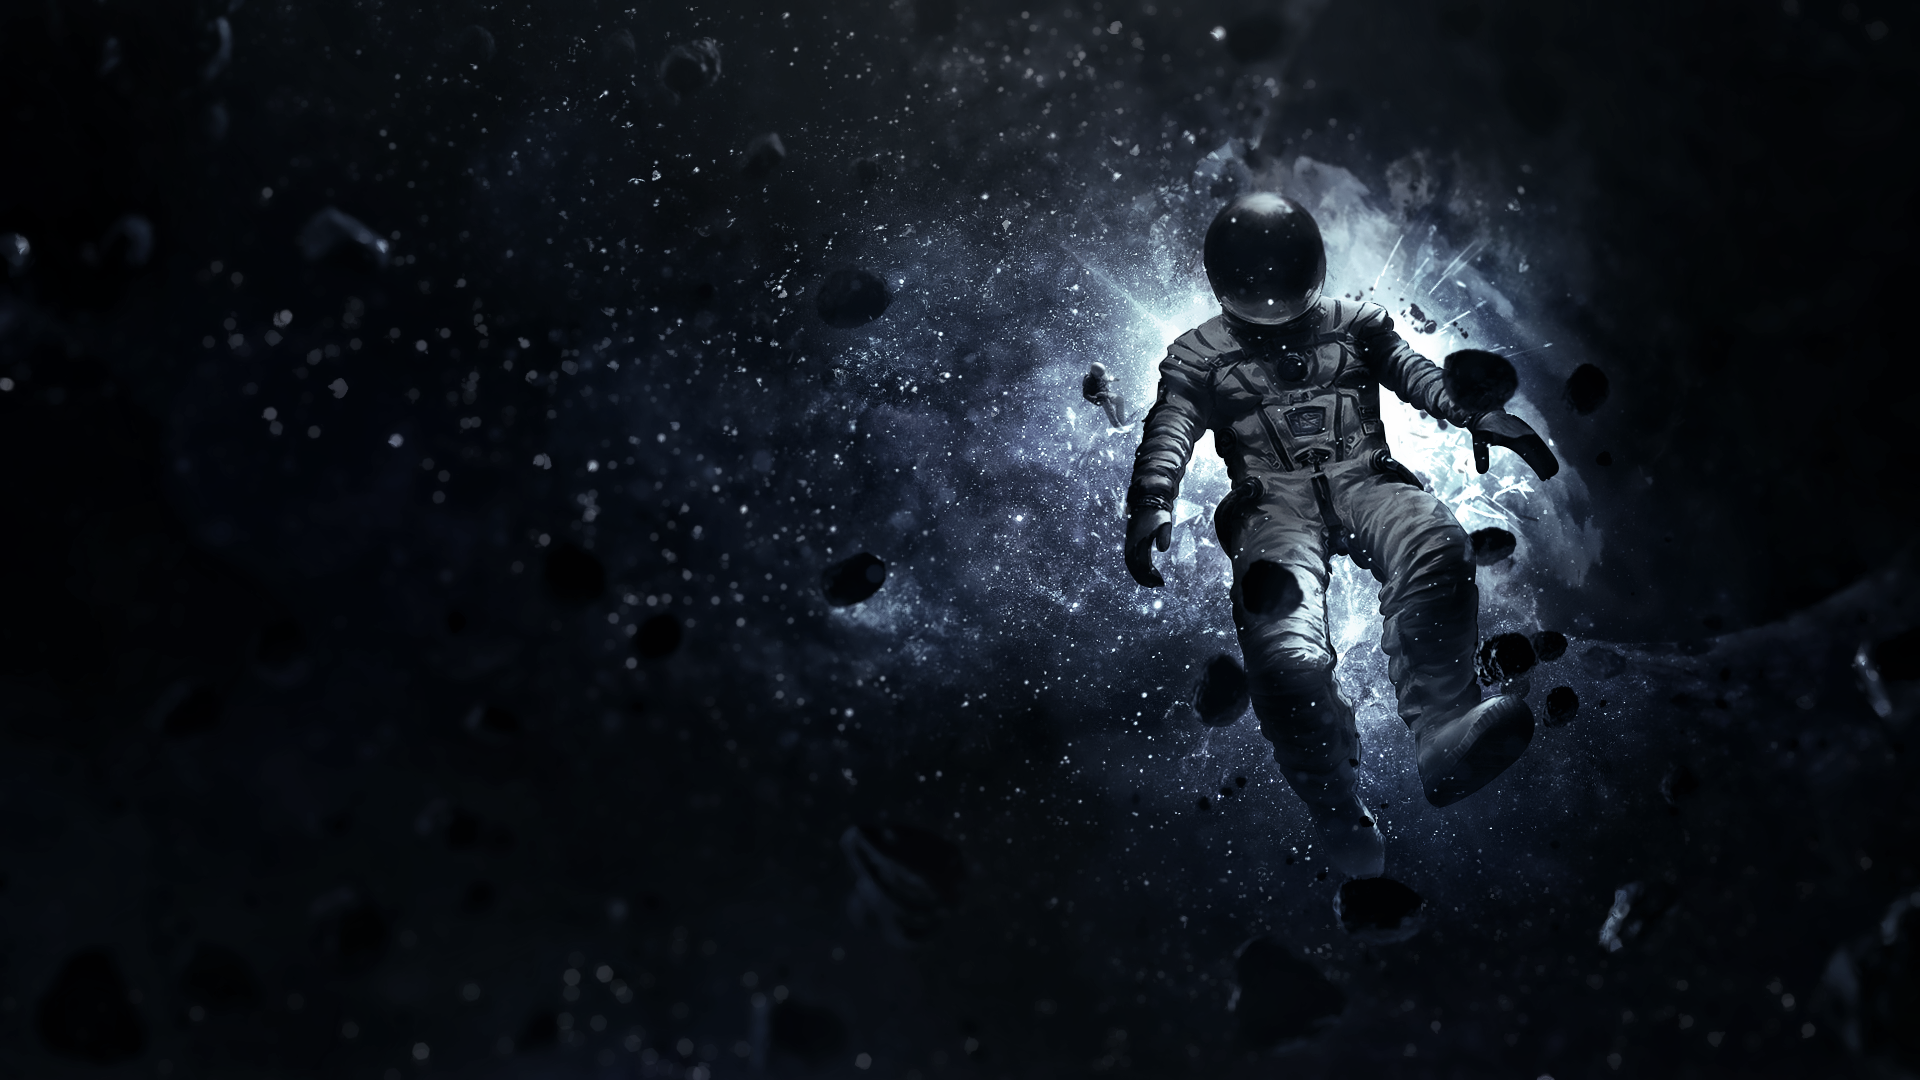 Astronaut lost in space wallpapers and images   wallpapers 1920x1080